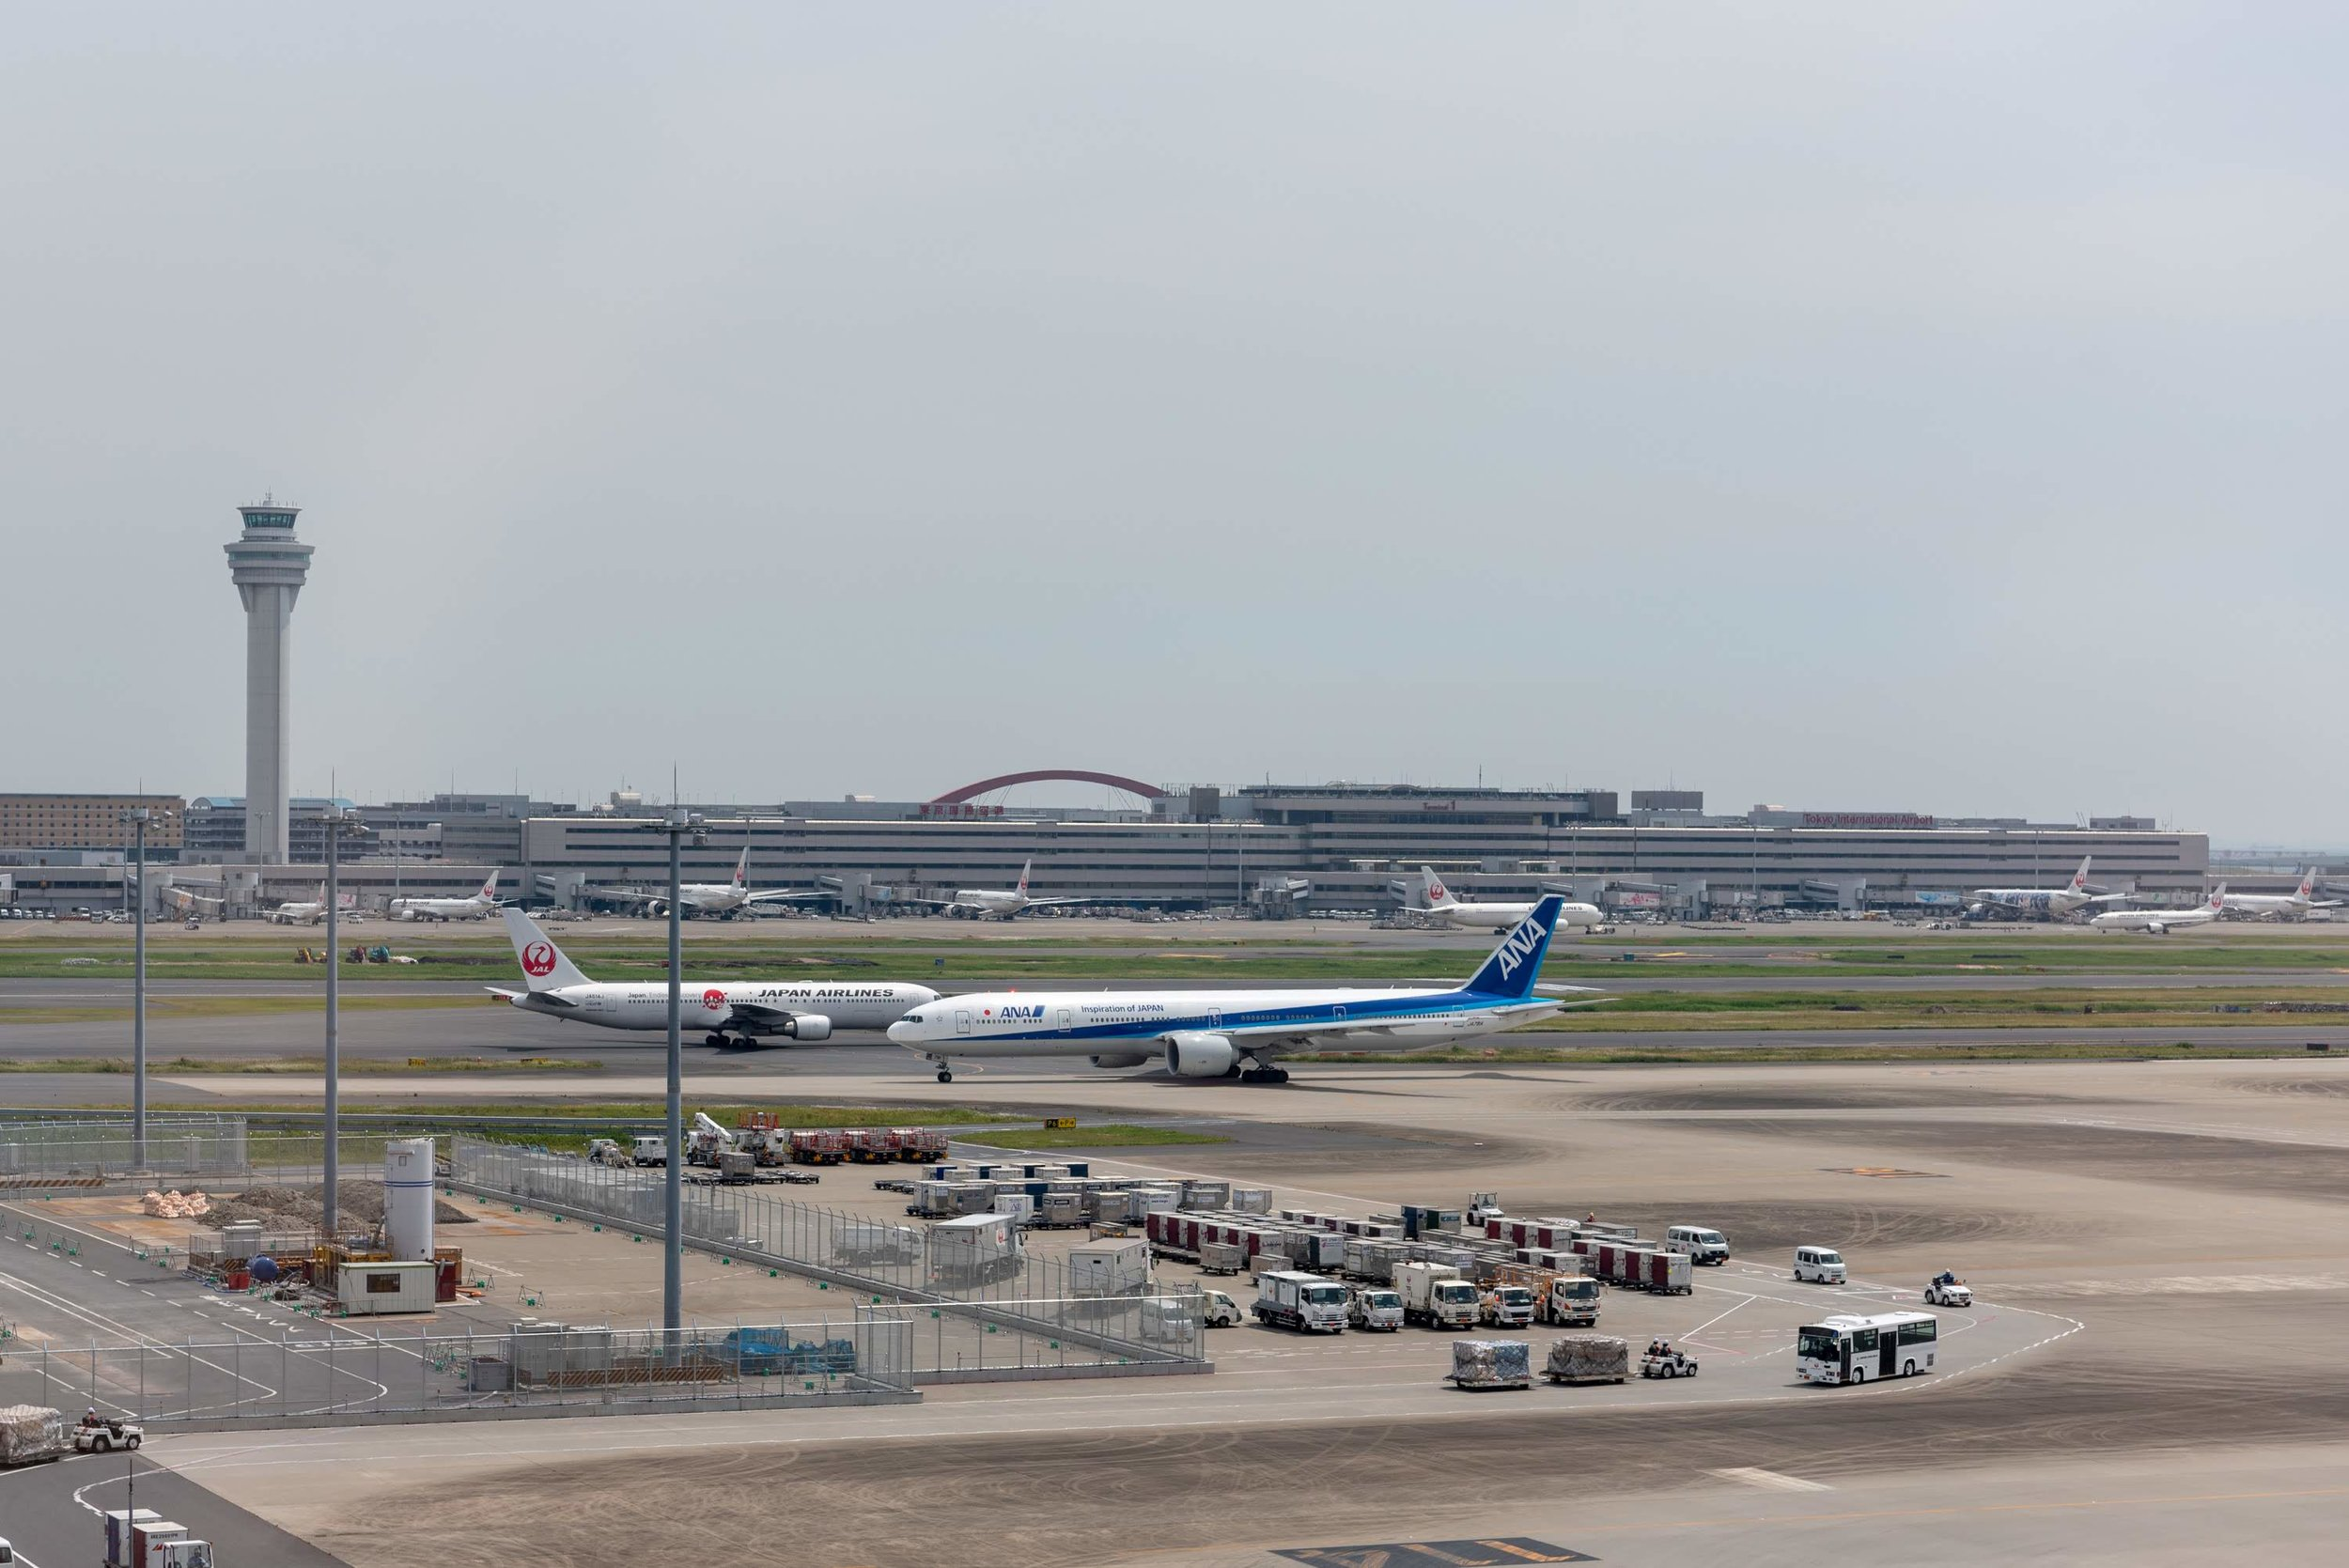 View from the Lounge  Japan Airlines Sakura Lounge Skyview - Haneda Airport (HND)